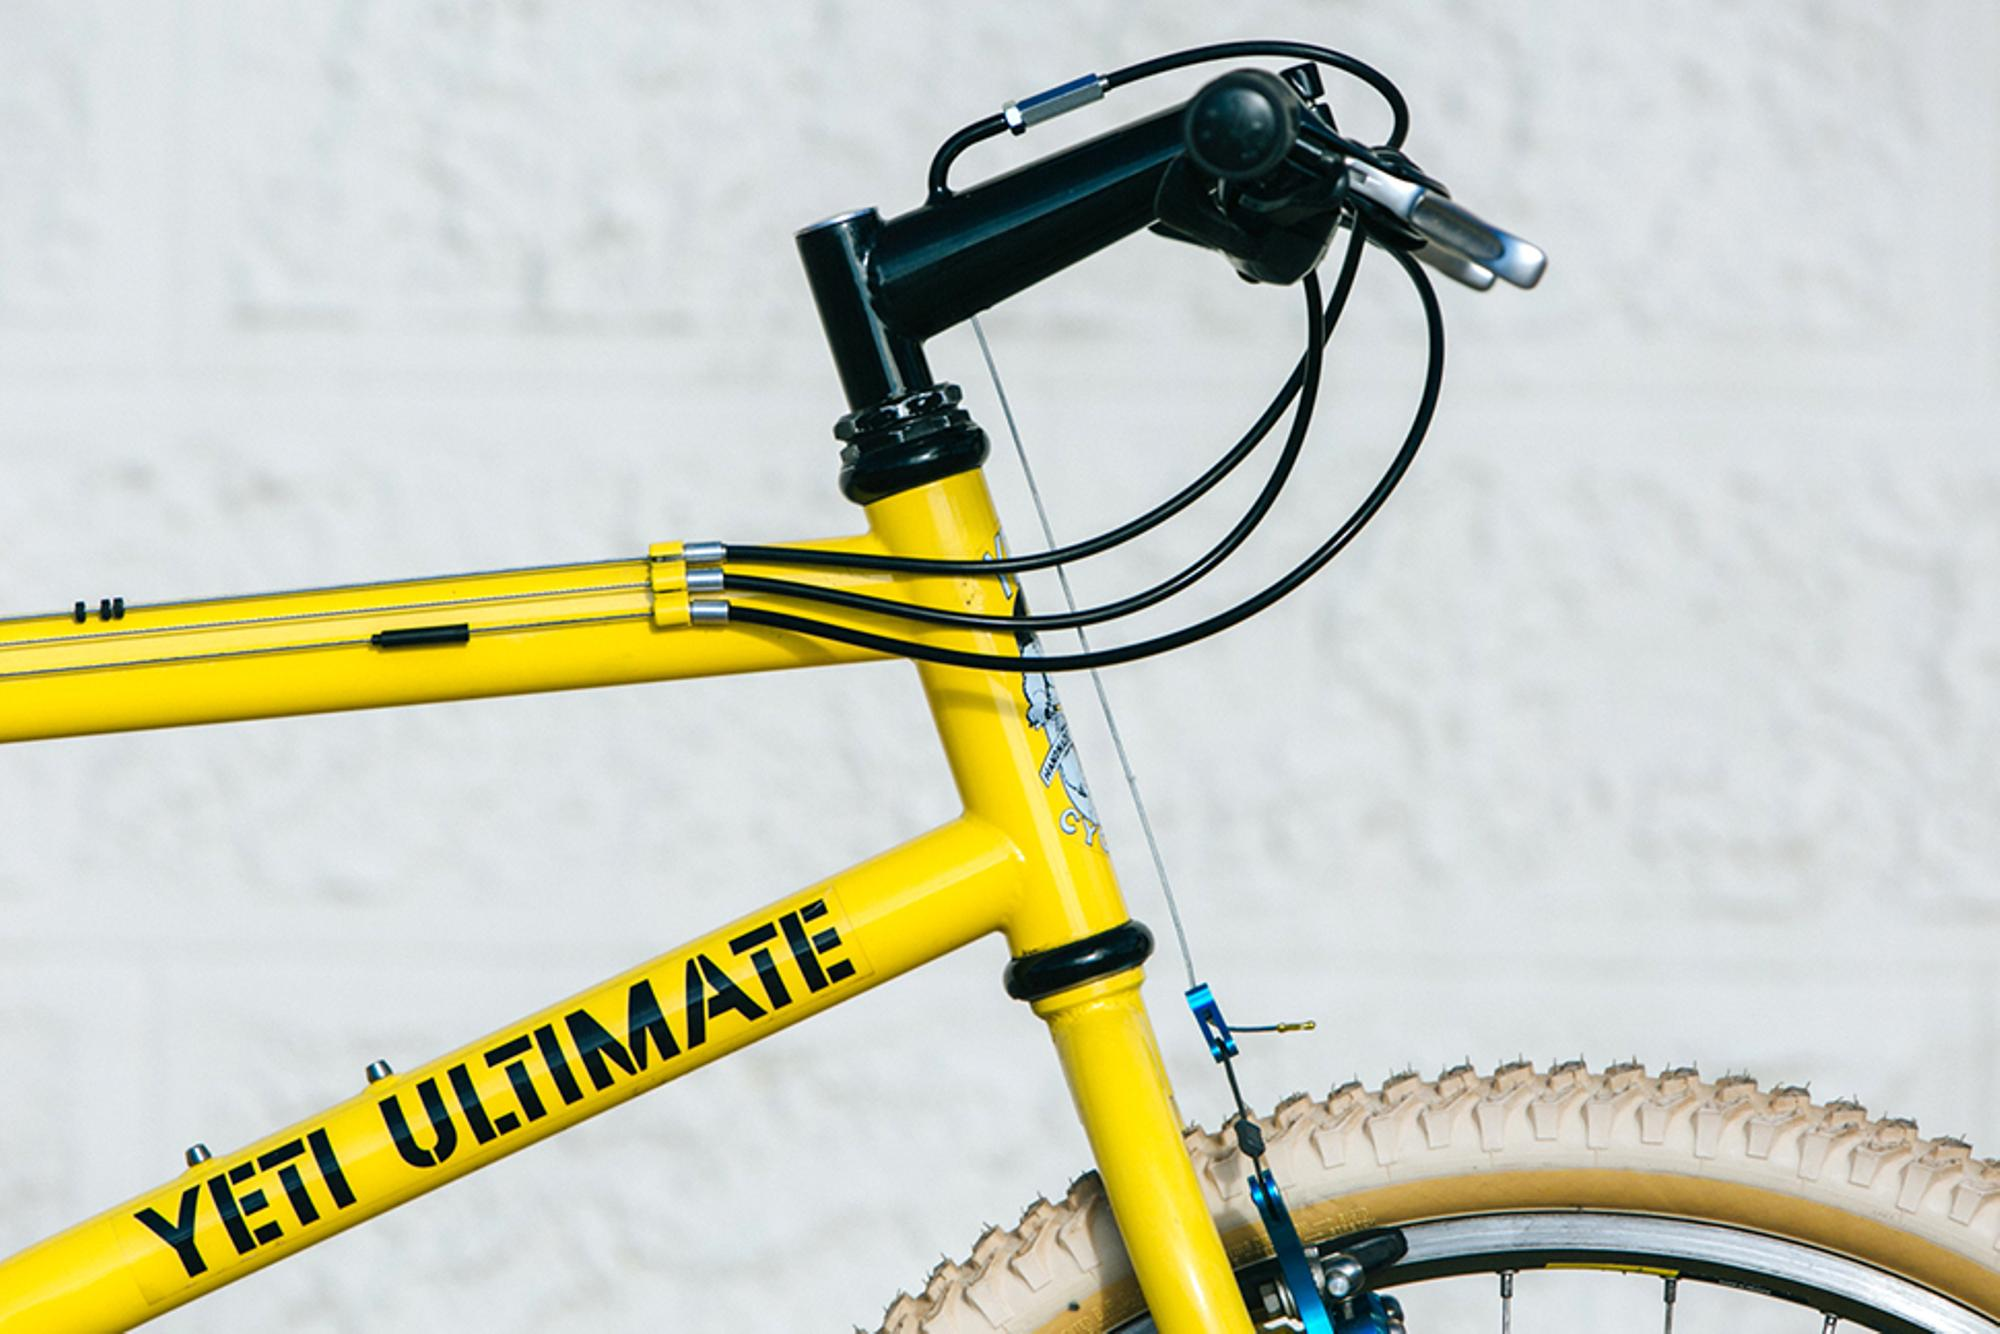 Beautiful Bicycle: Vintage Yeti Ultimate MTB